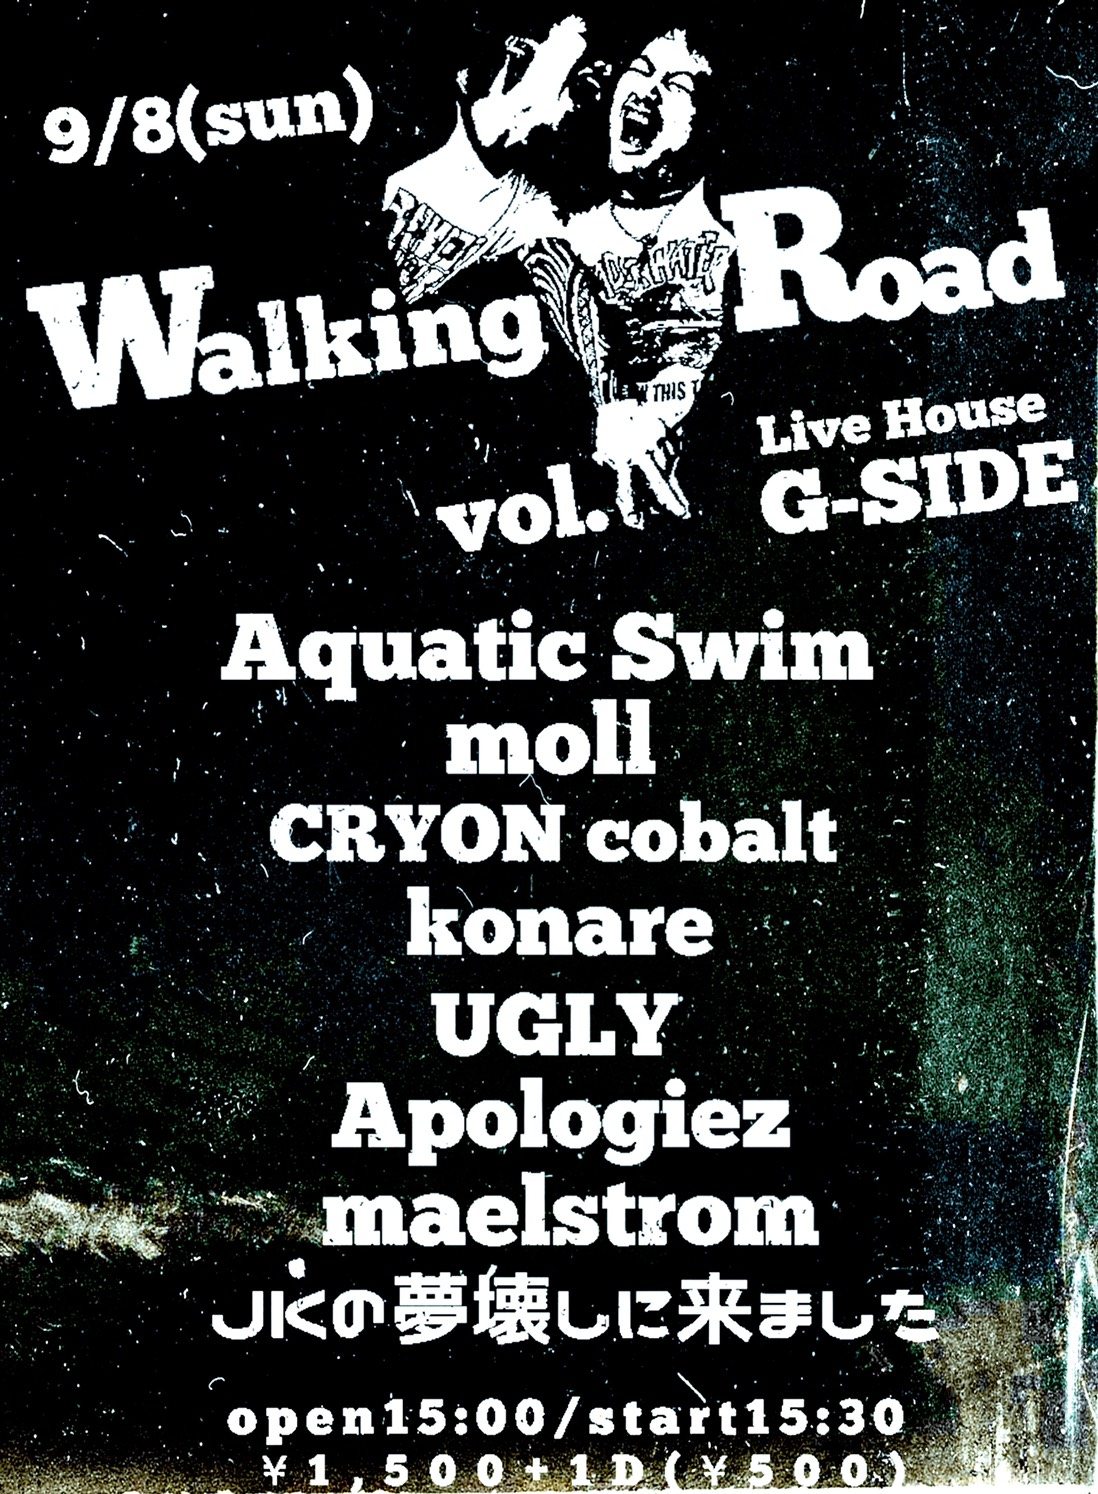 Walking Road vol.2